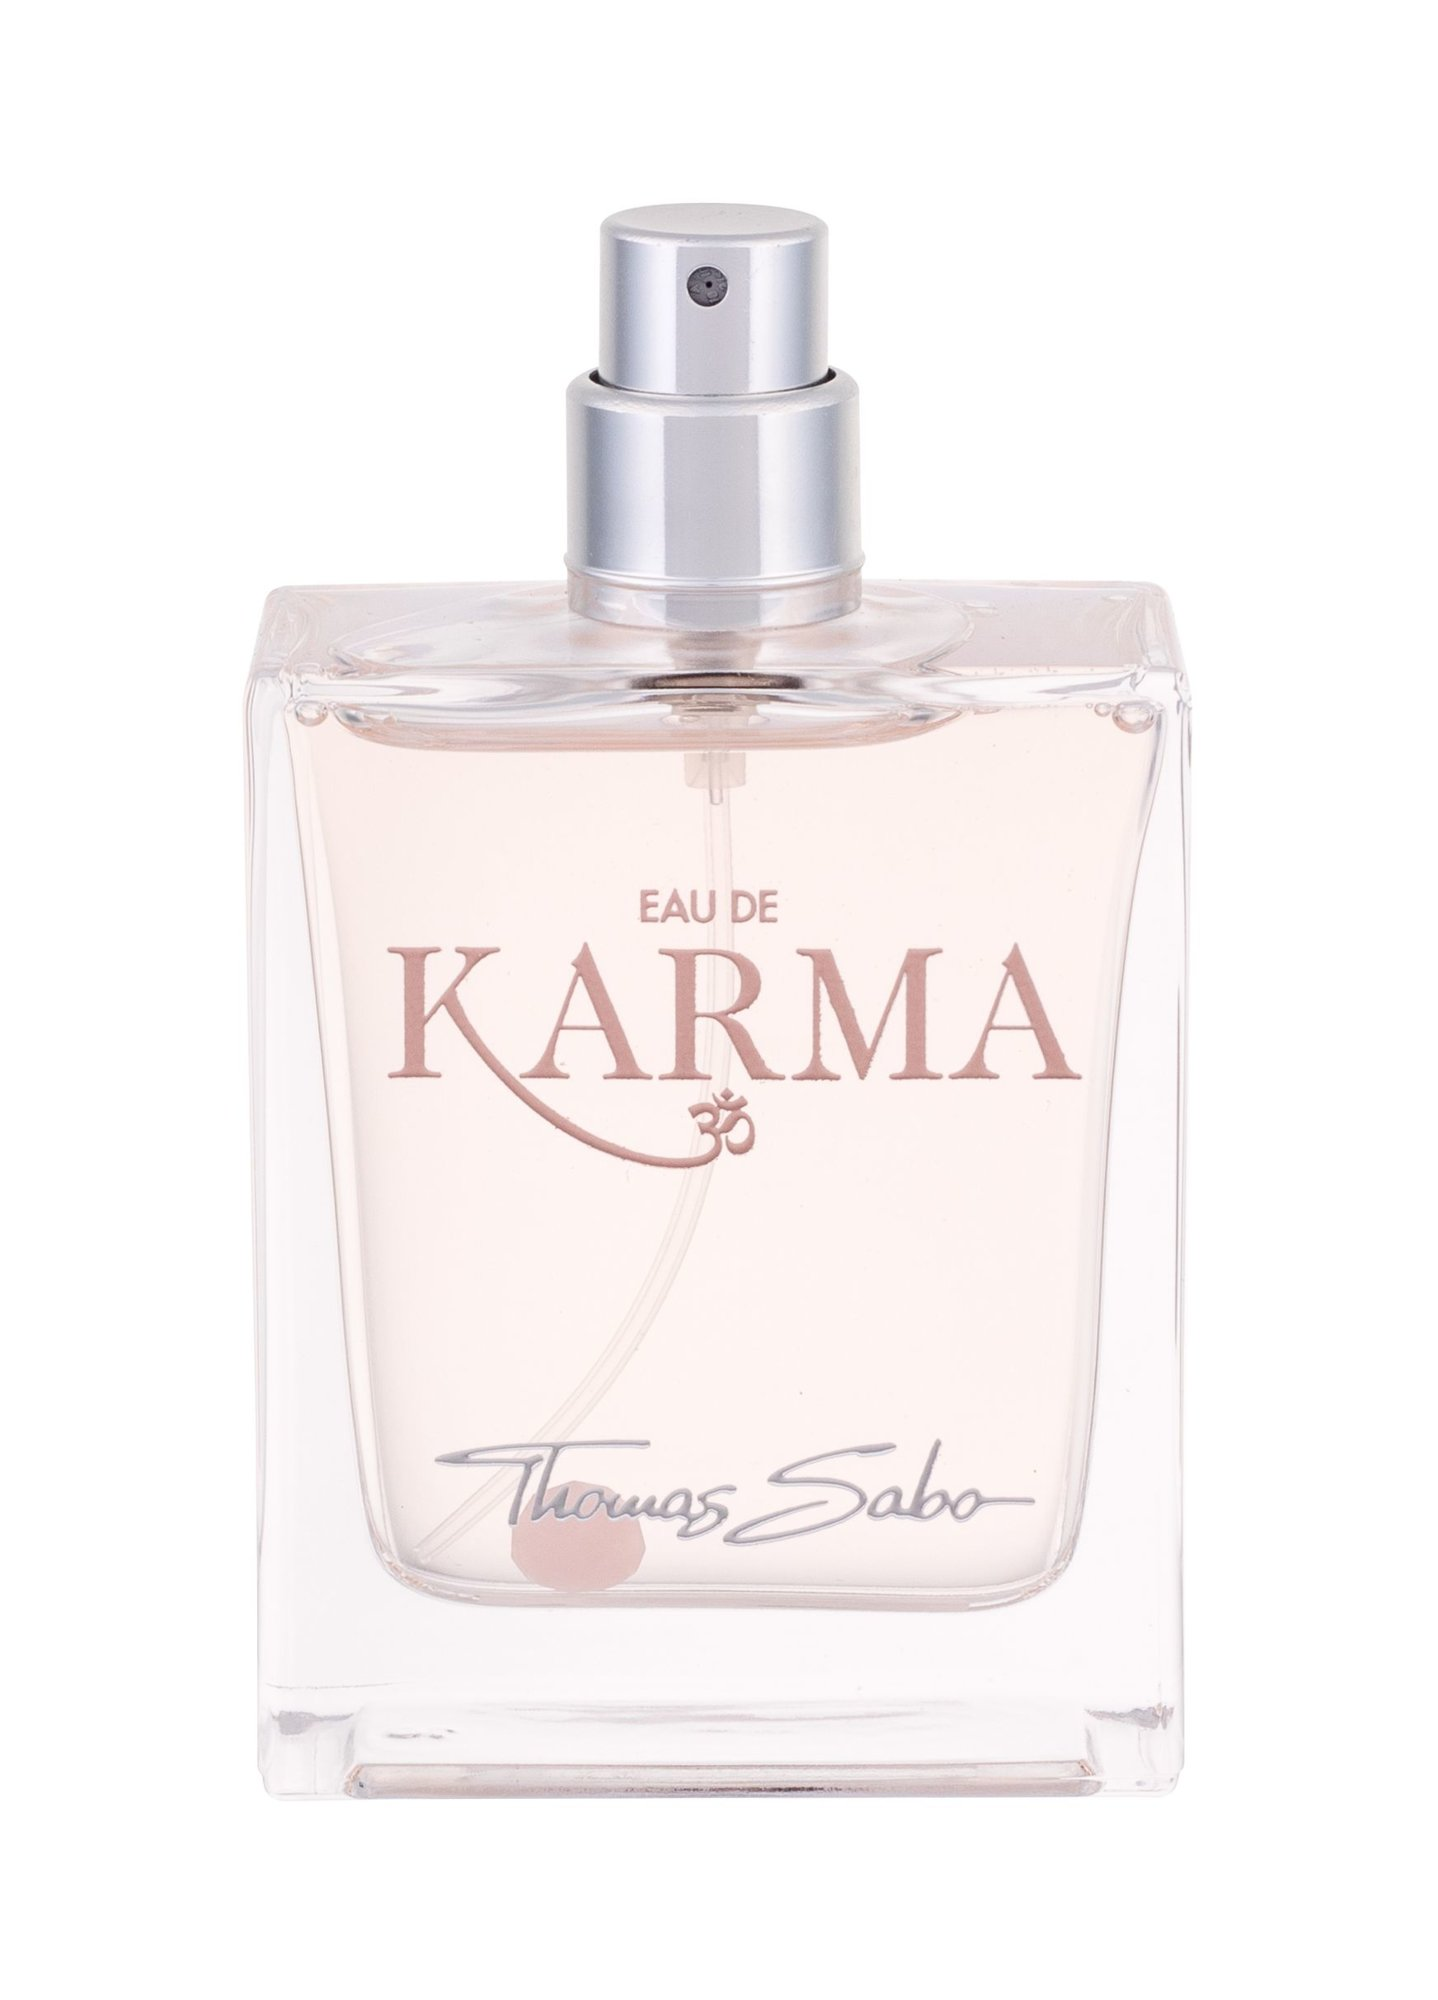 Thomas Sabo Eau de Karma EDP 50ml